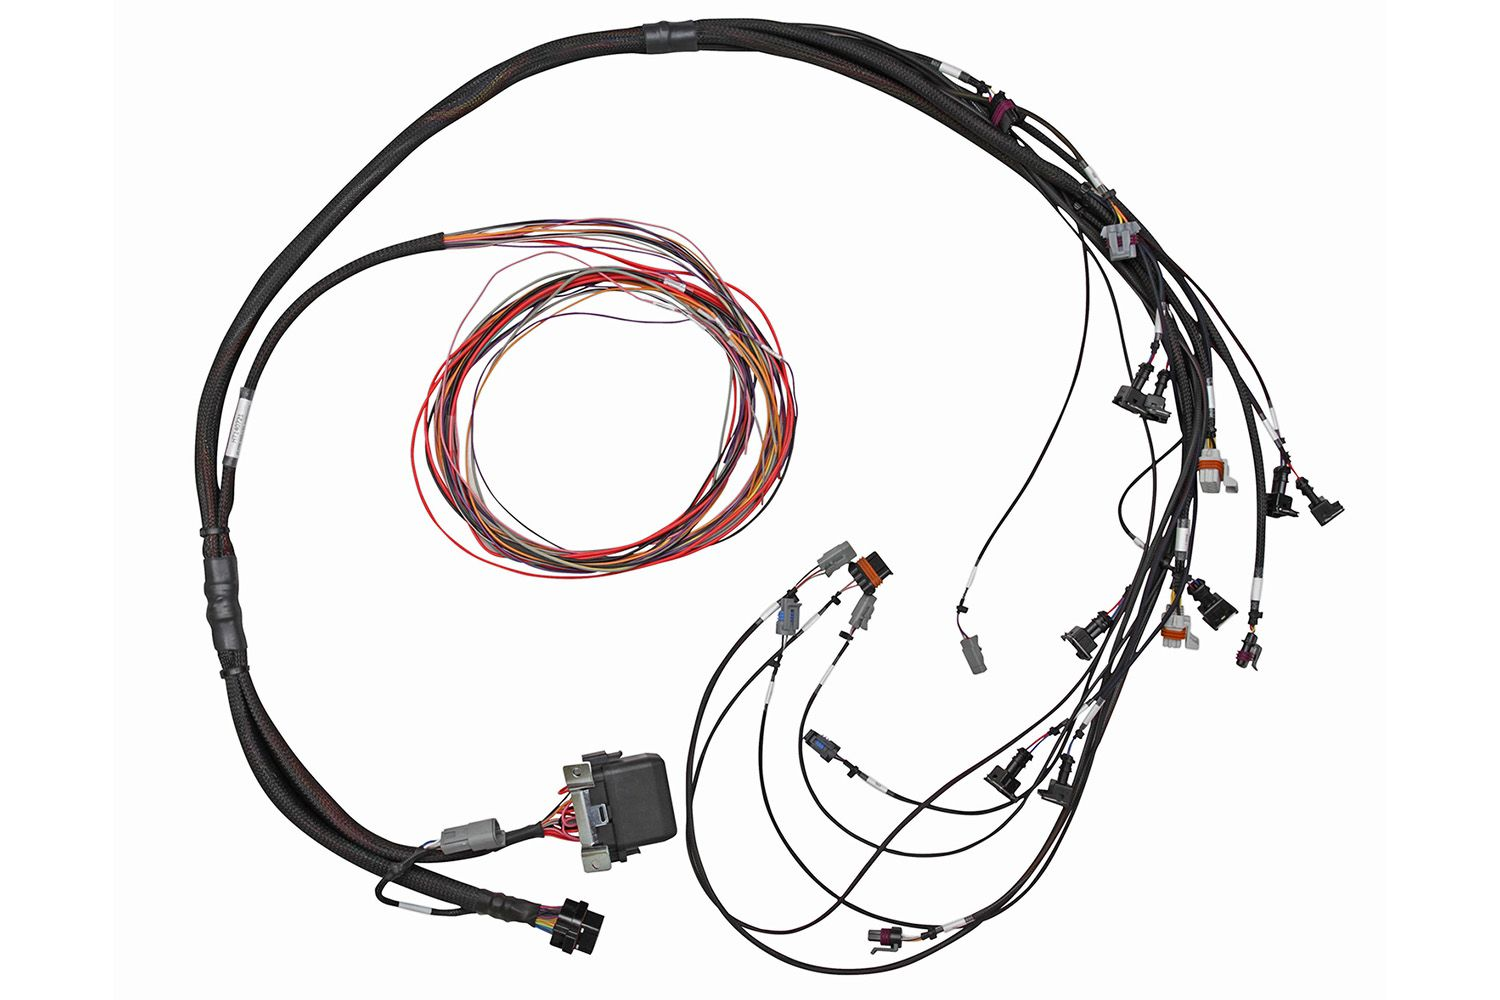 Elite 950 GM GEN IV LS2 & LS3 non DBW engine harness